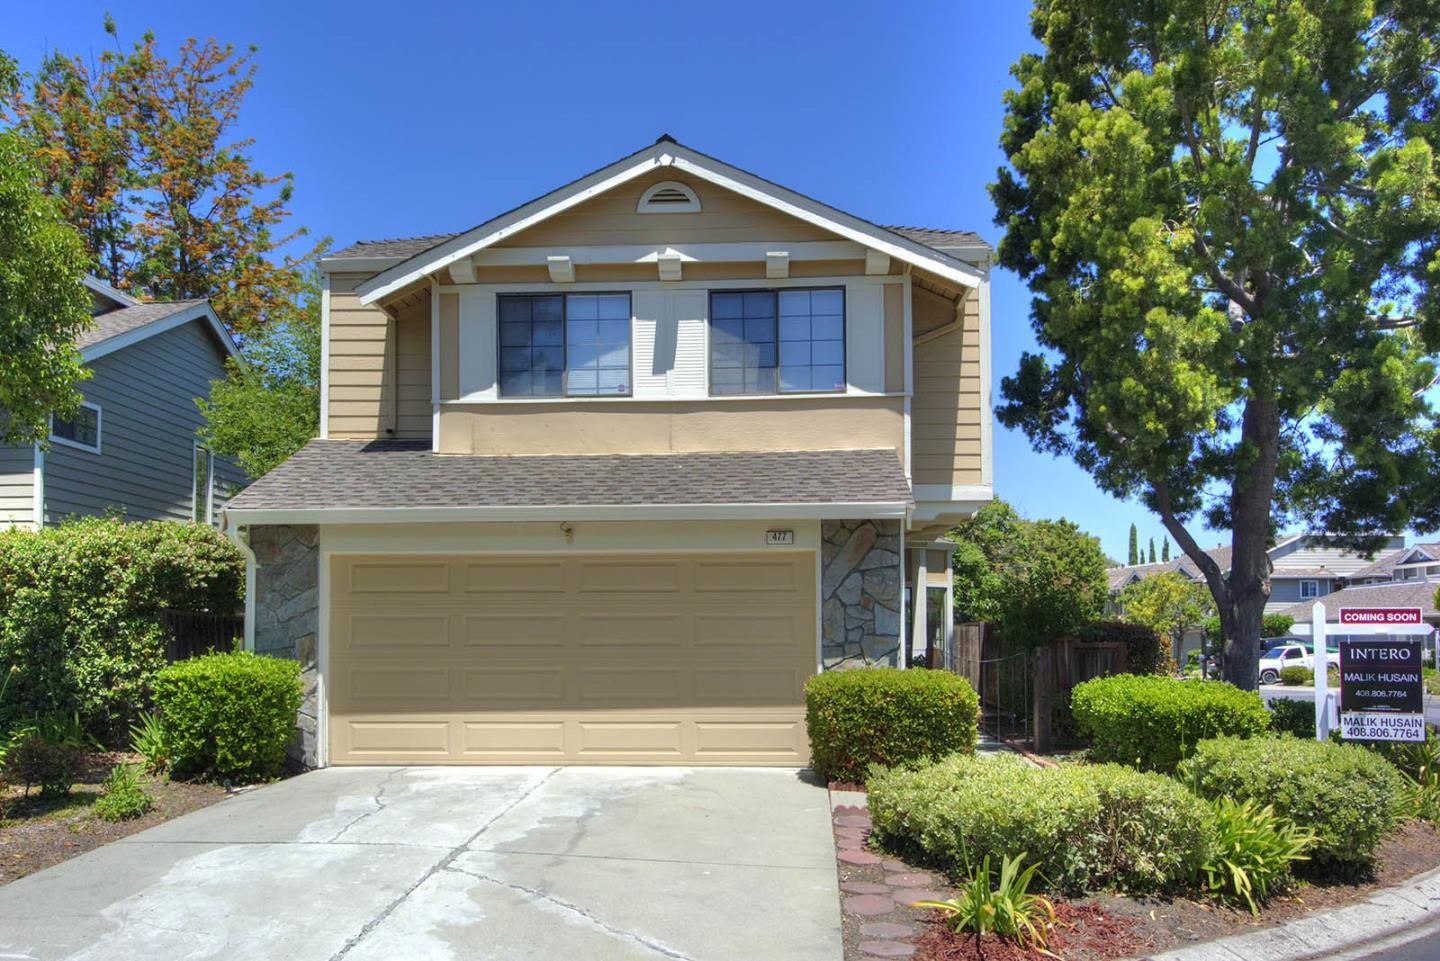 Detail Gallery Image 1 of 1 For 477 Folsom Cir, Milpitas, CA, 95035 - 4 Beds | 2/1 Baths